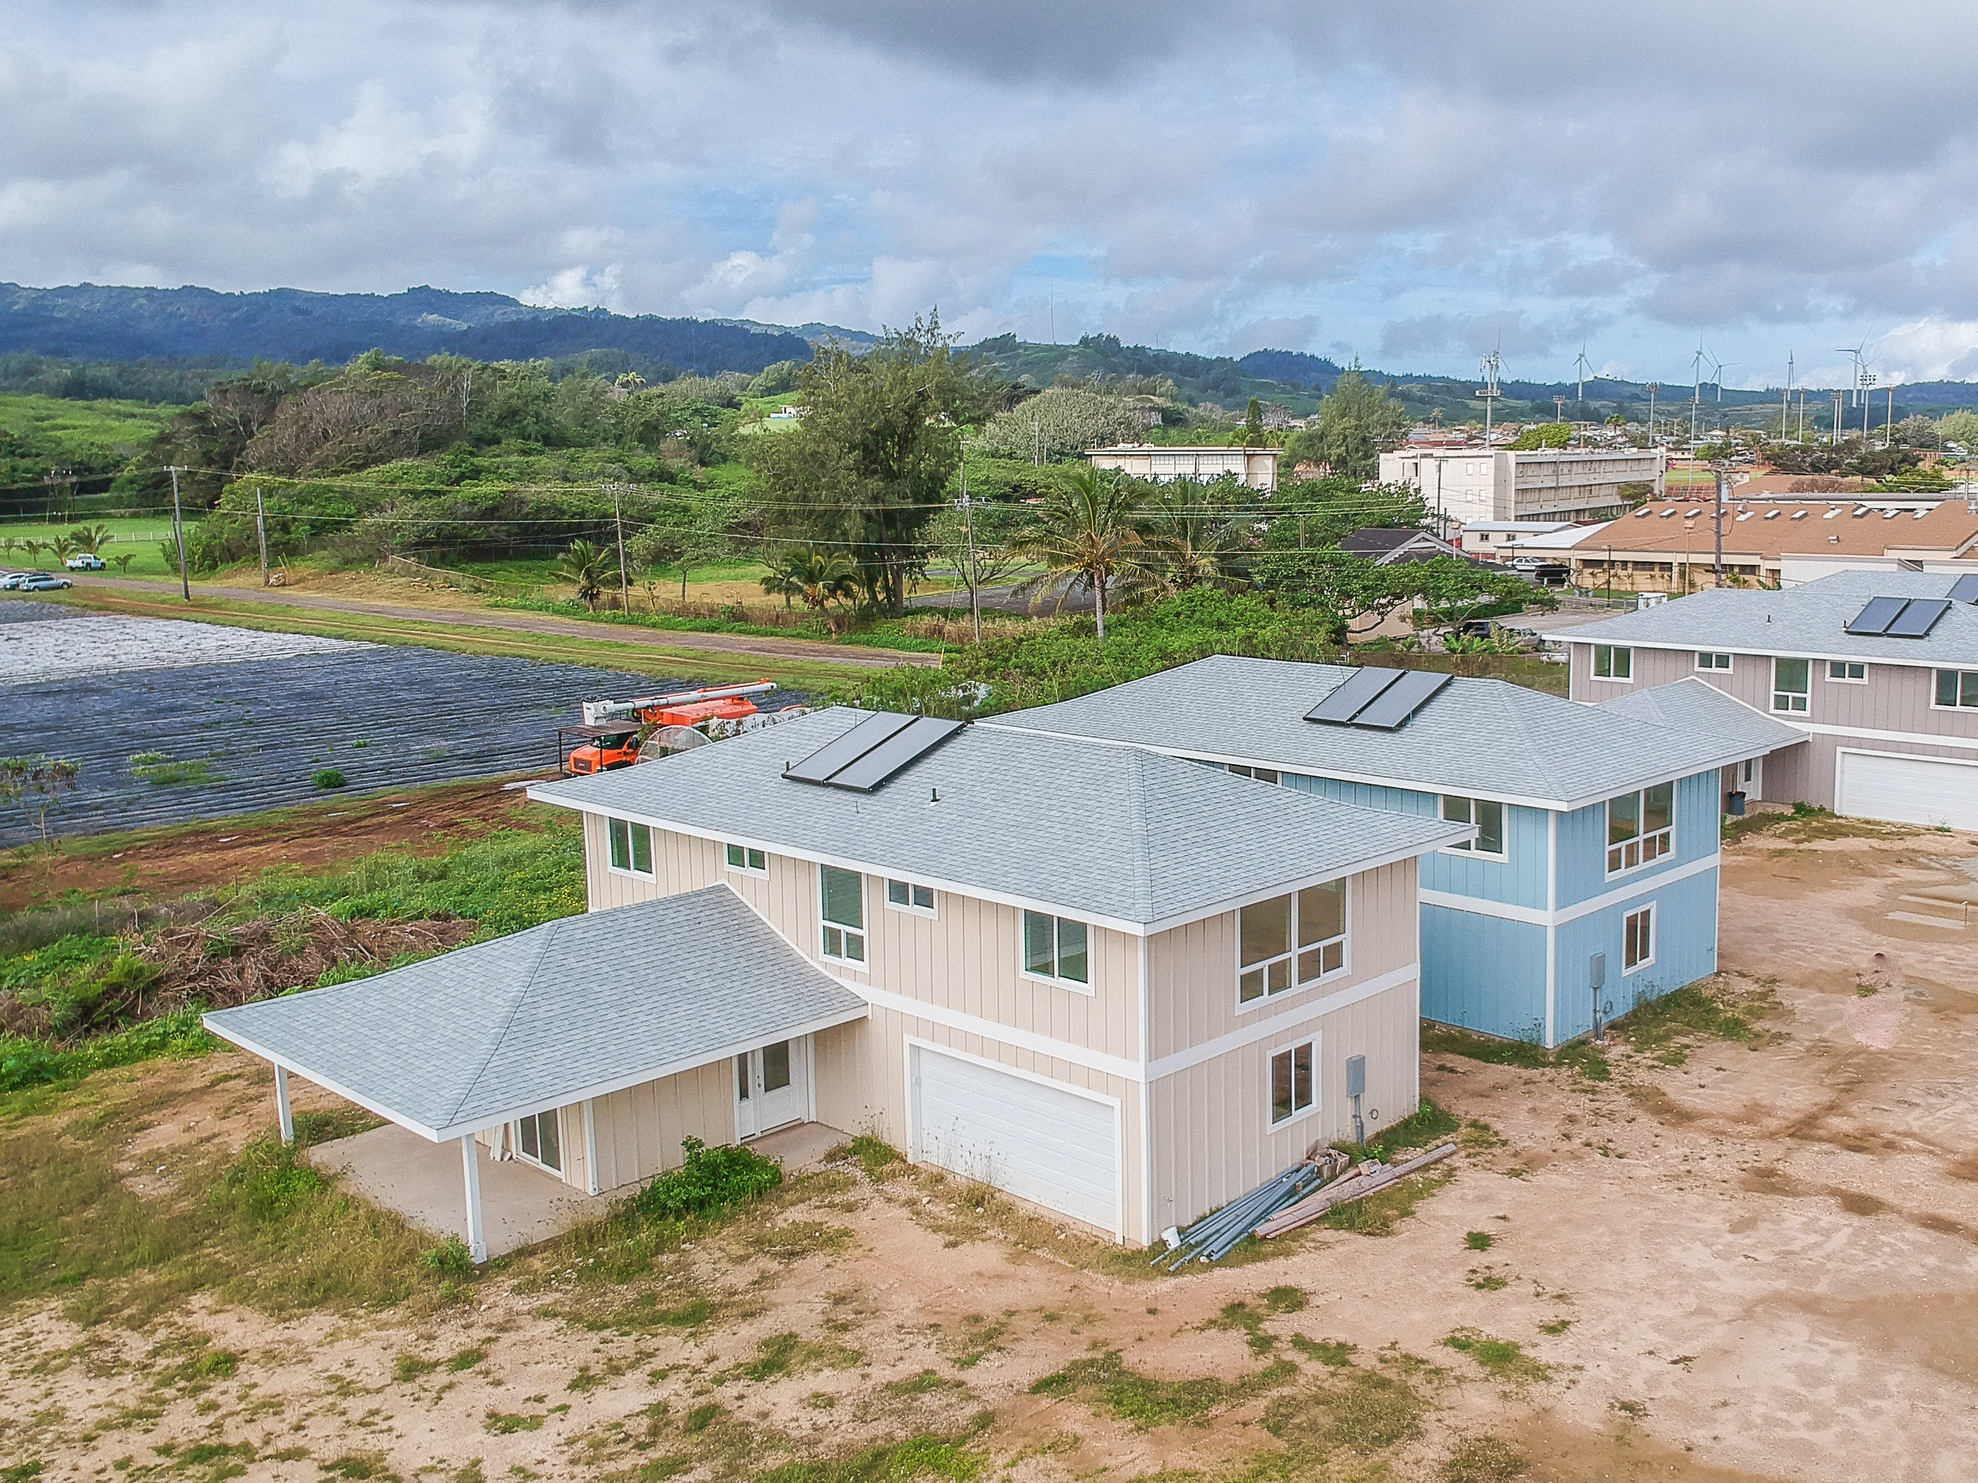 Kahuku Villas: North Shore of Oahu - A beautiful 16 unit development positioned perfectly serve the needs of North Shore families with an affordable price point.With 3 contemporary home designs, this community is set to launch and sell this year.